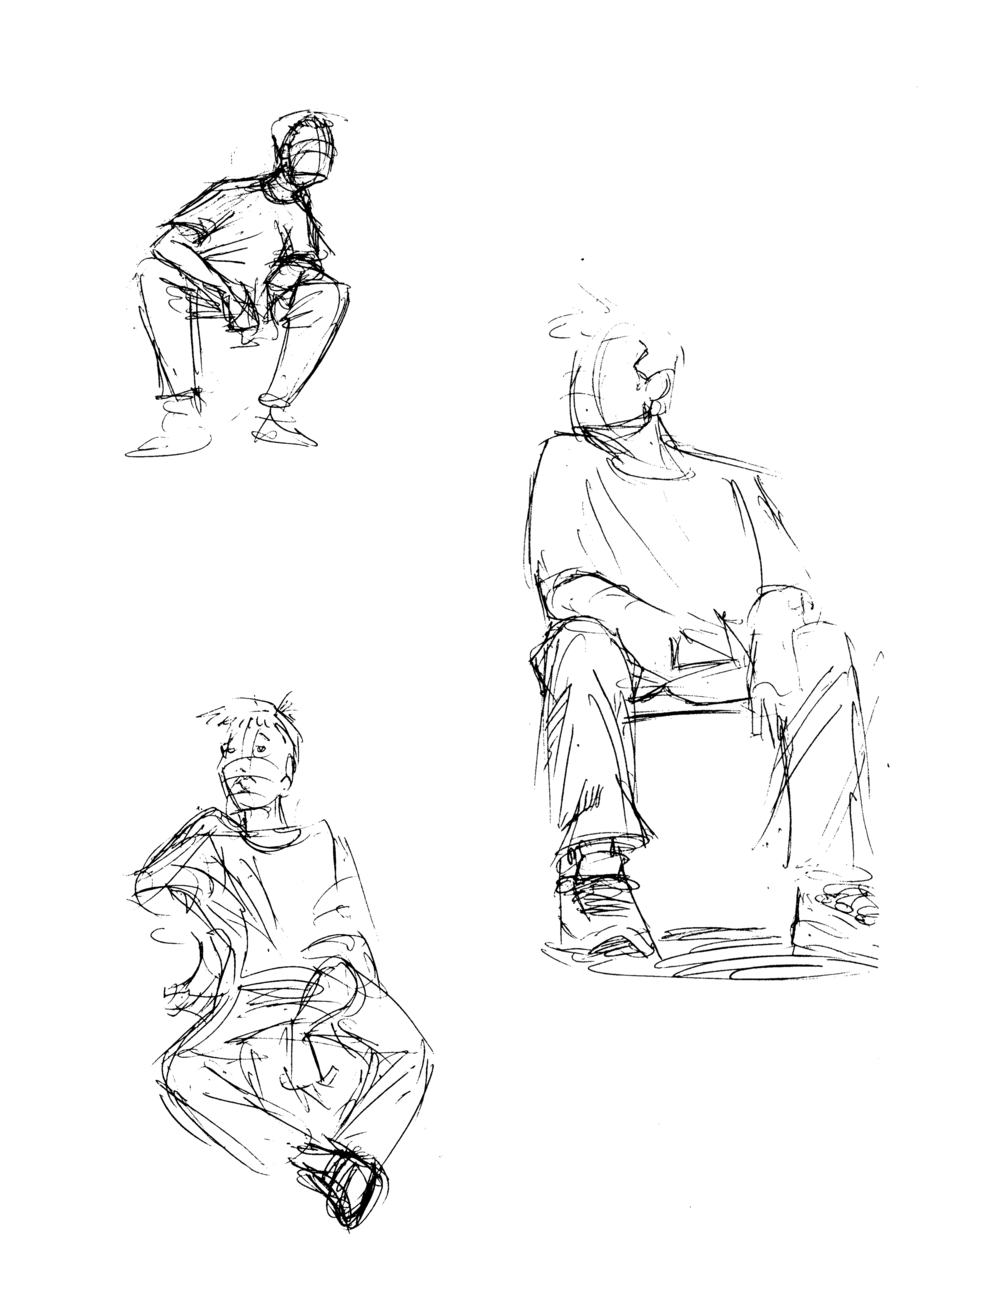 Sketch book 3 kids sitting.jpeg